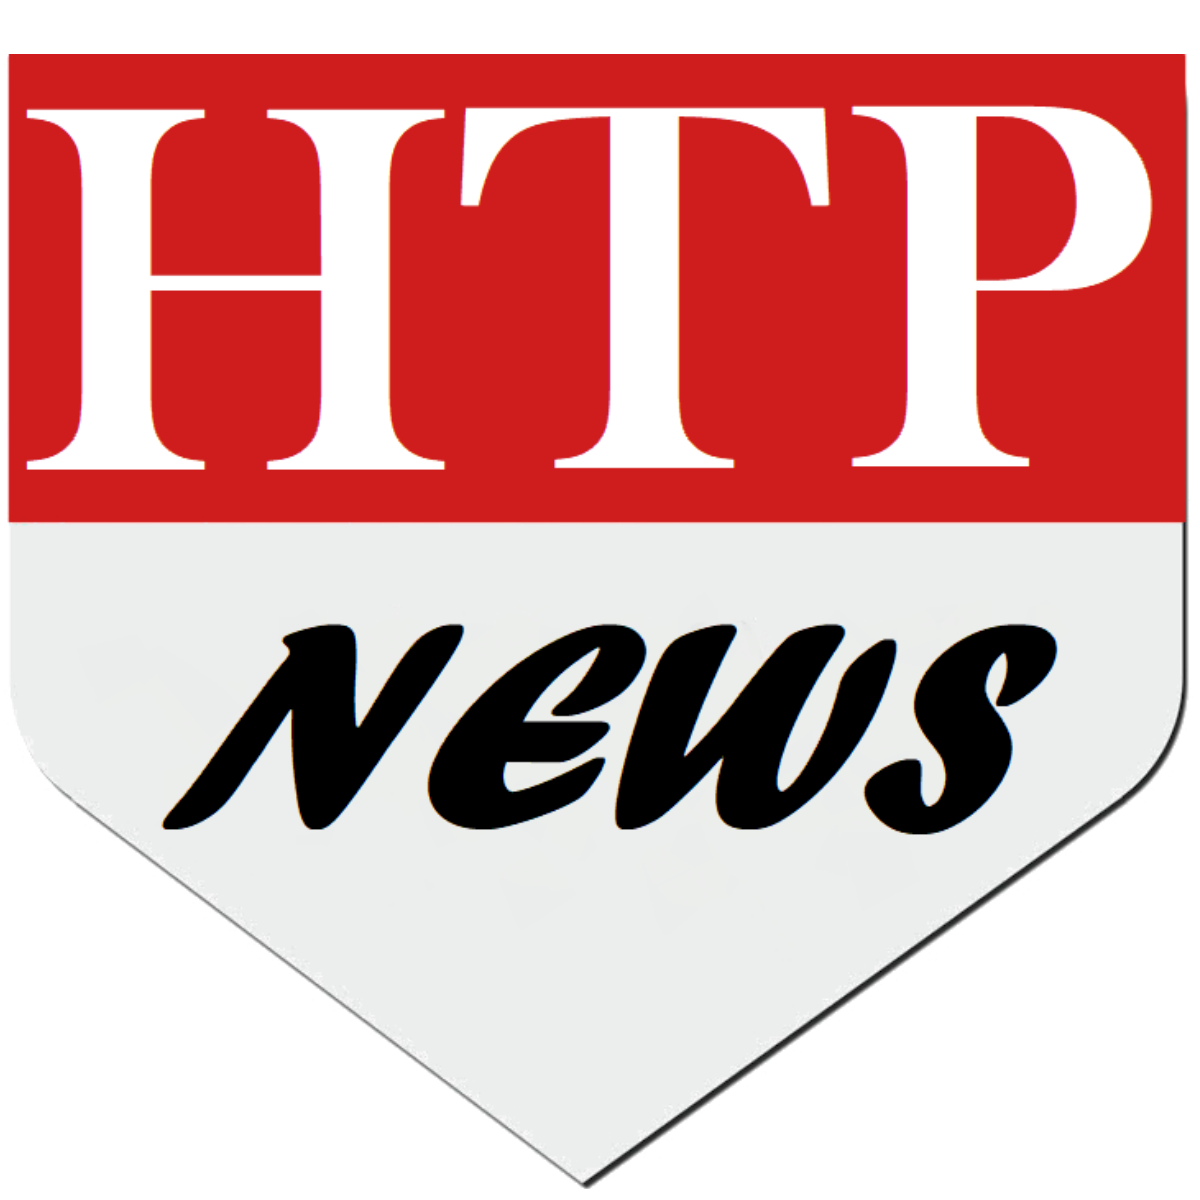 HTP News - Hindi News, All Latest News in Hindi, हिंदी खबर, Breaking News